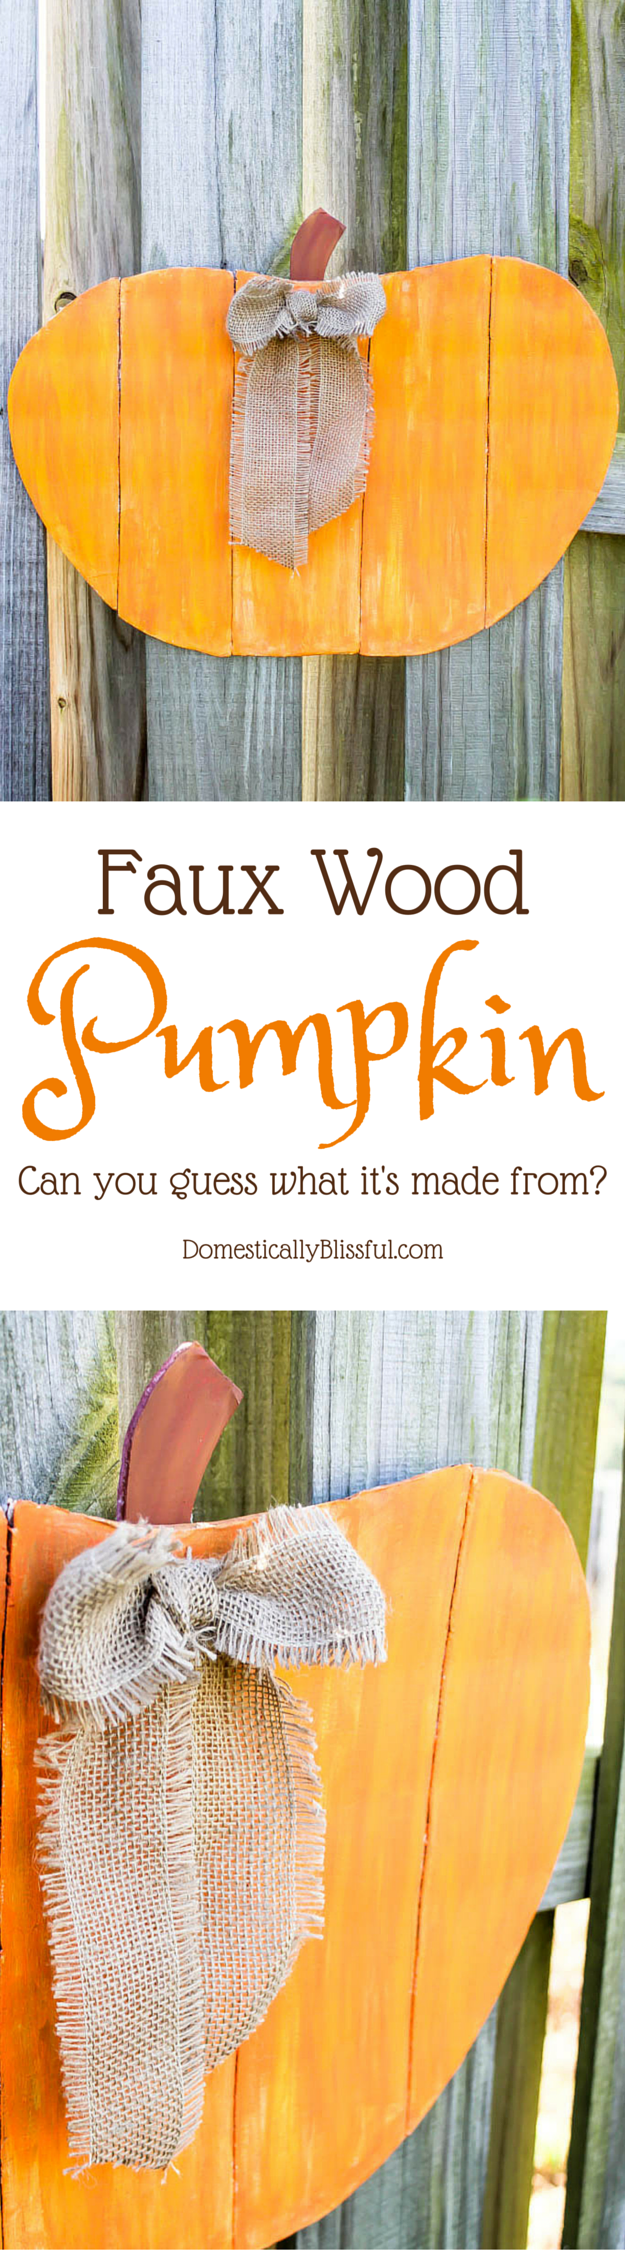 A Faux Wood Pumpkin that isn't made from wood